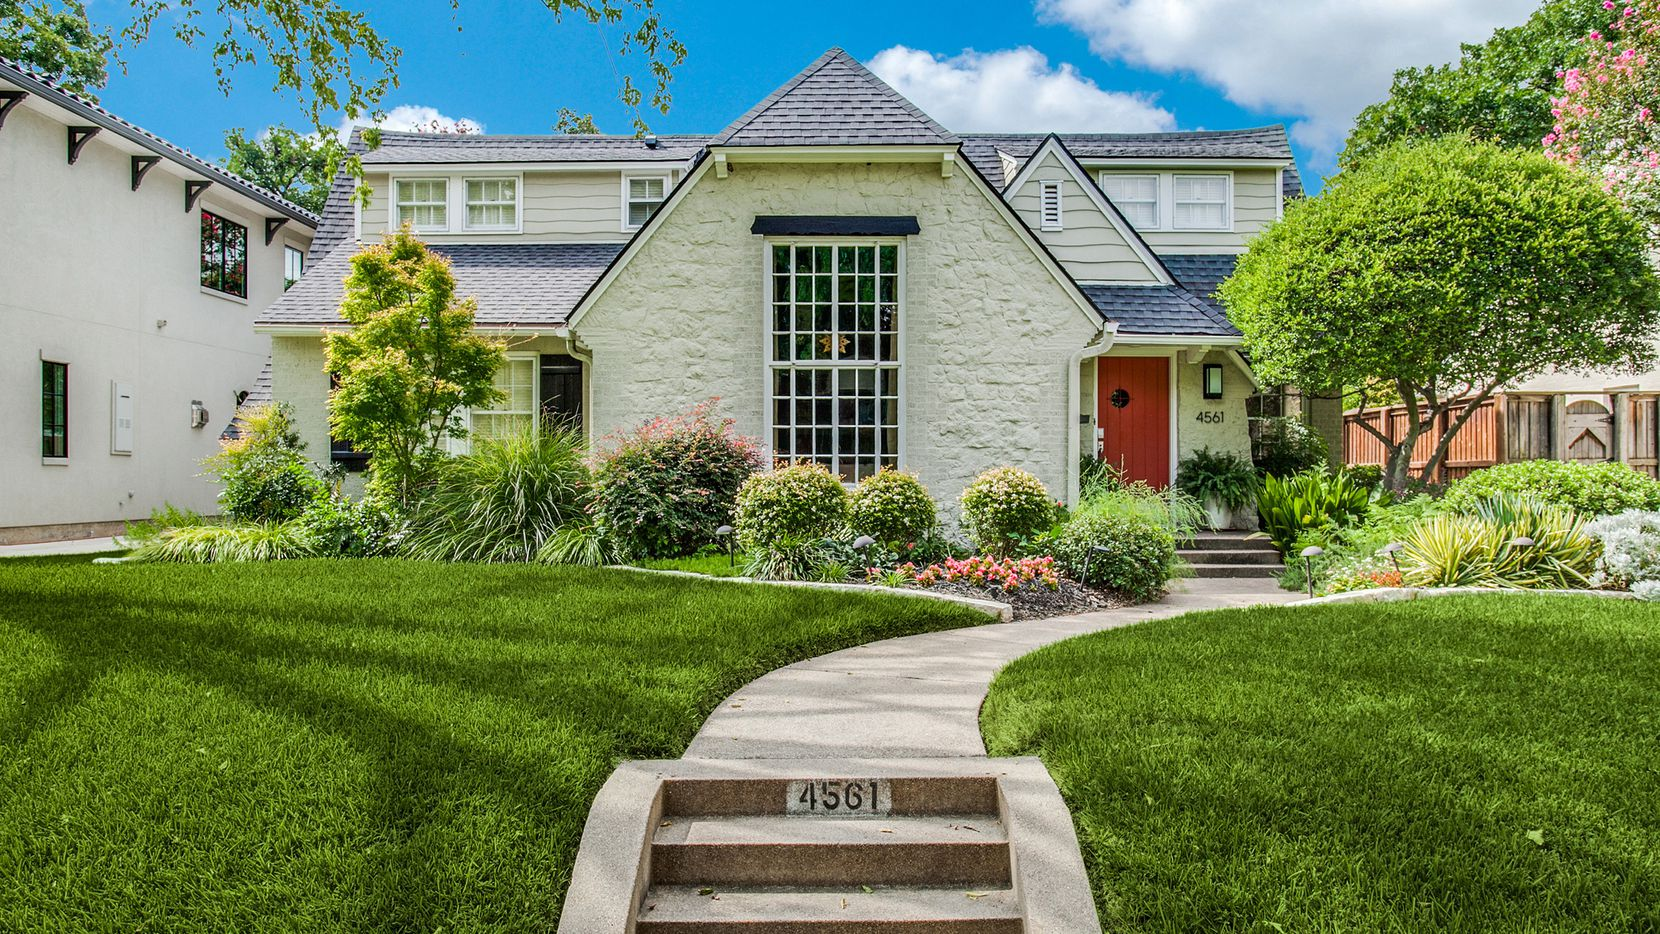 The four-bedroom home at 4561 Belclaire Ave. in Highland Park features an updated design and is being marketed by Richard Graziano.